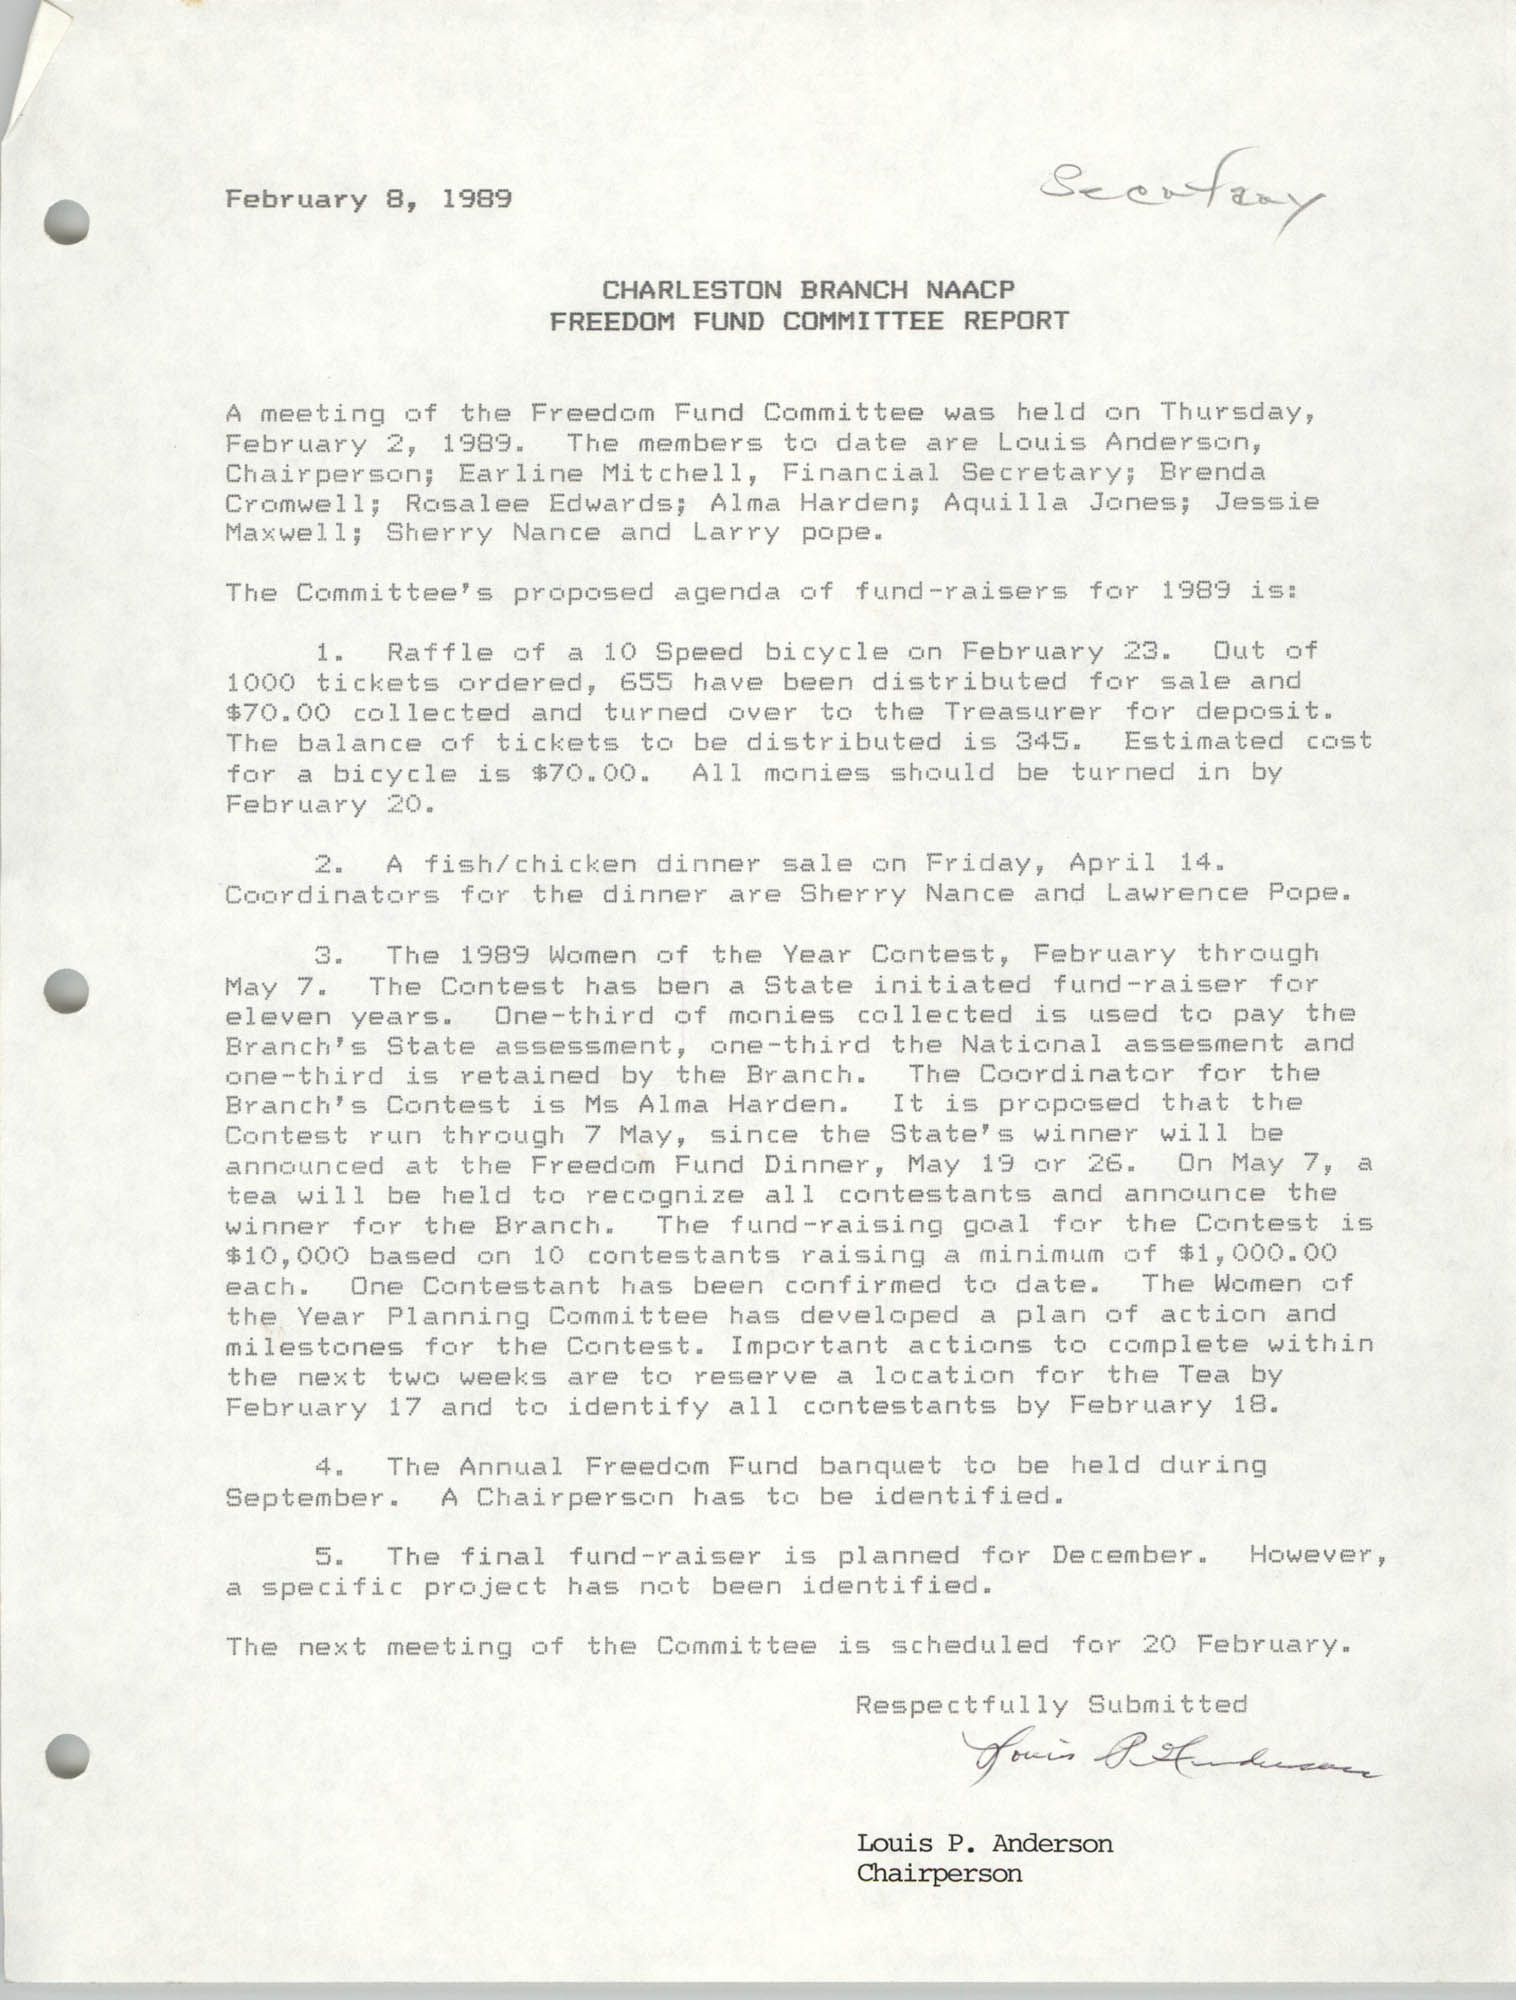 Charleston Branch of the NAACP Freedom Fund Committee Report, February 8, 1989